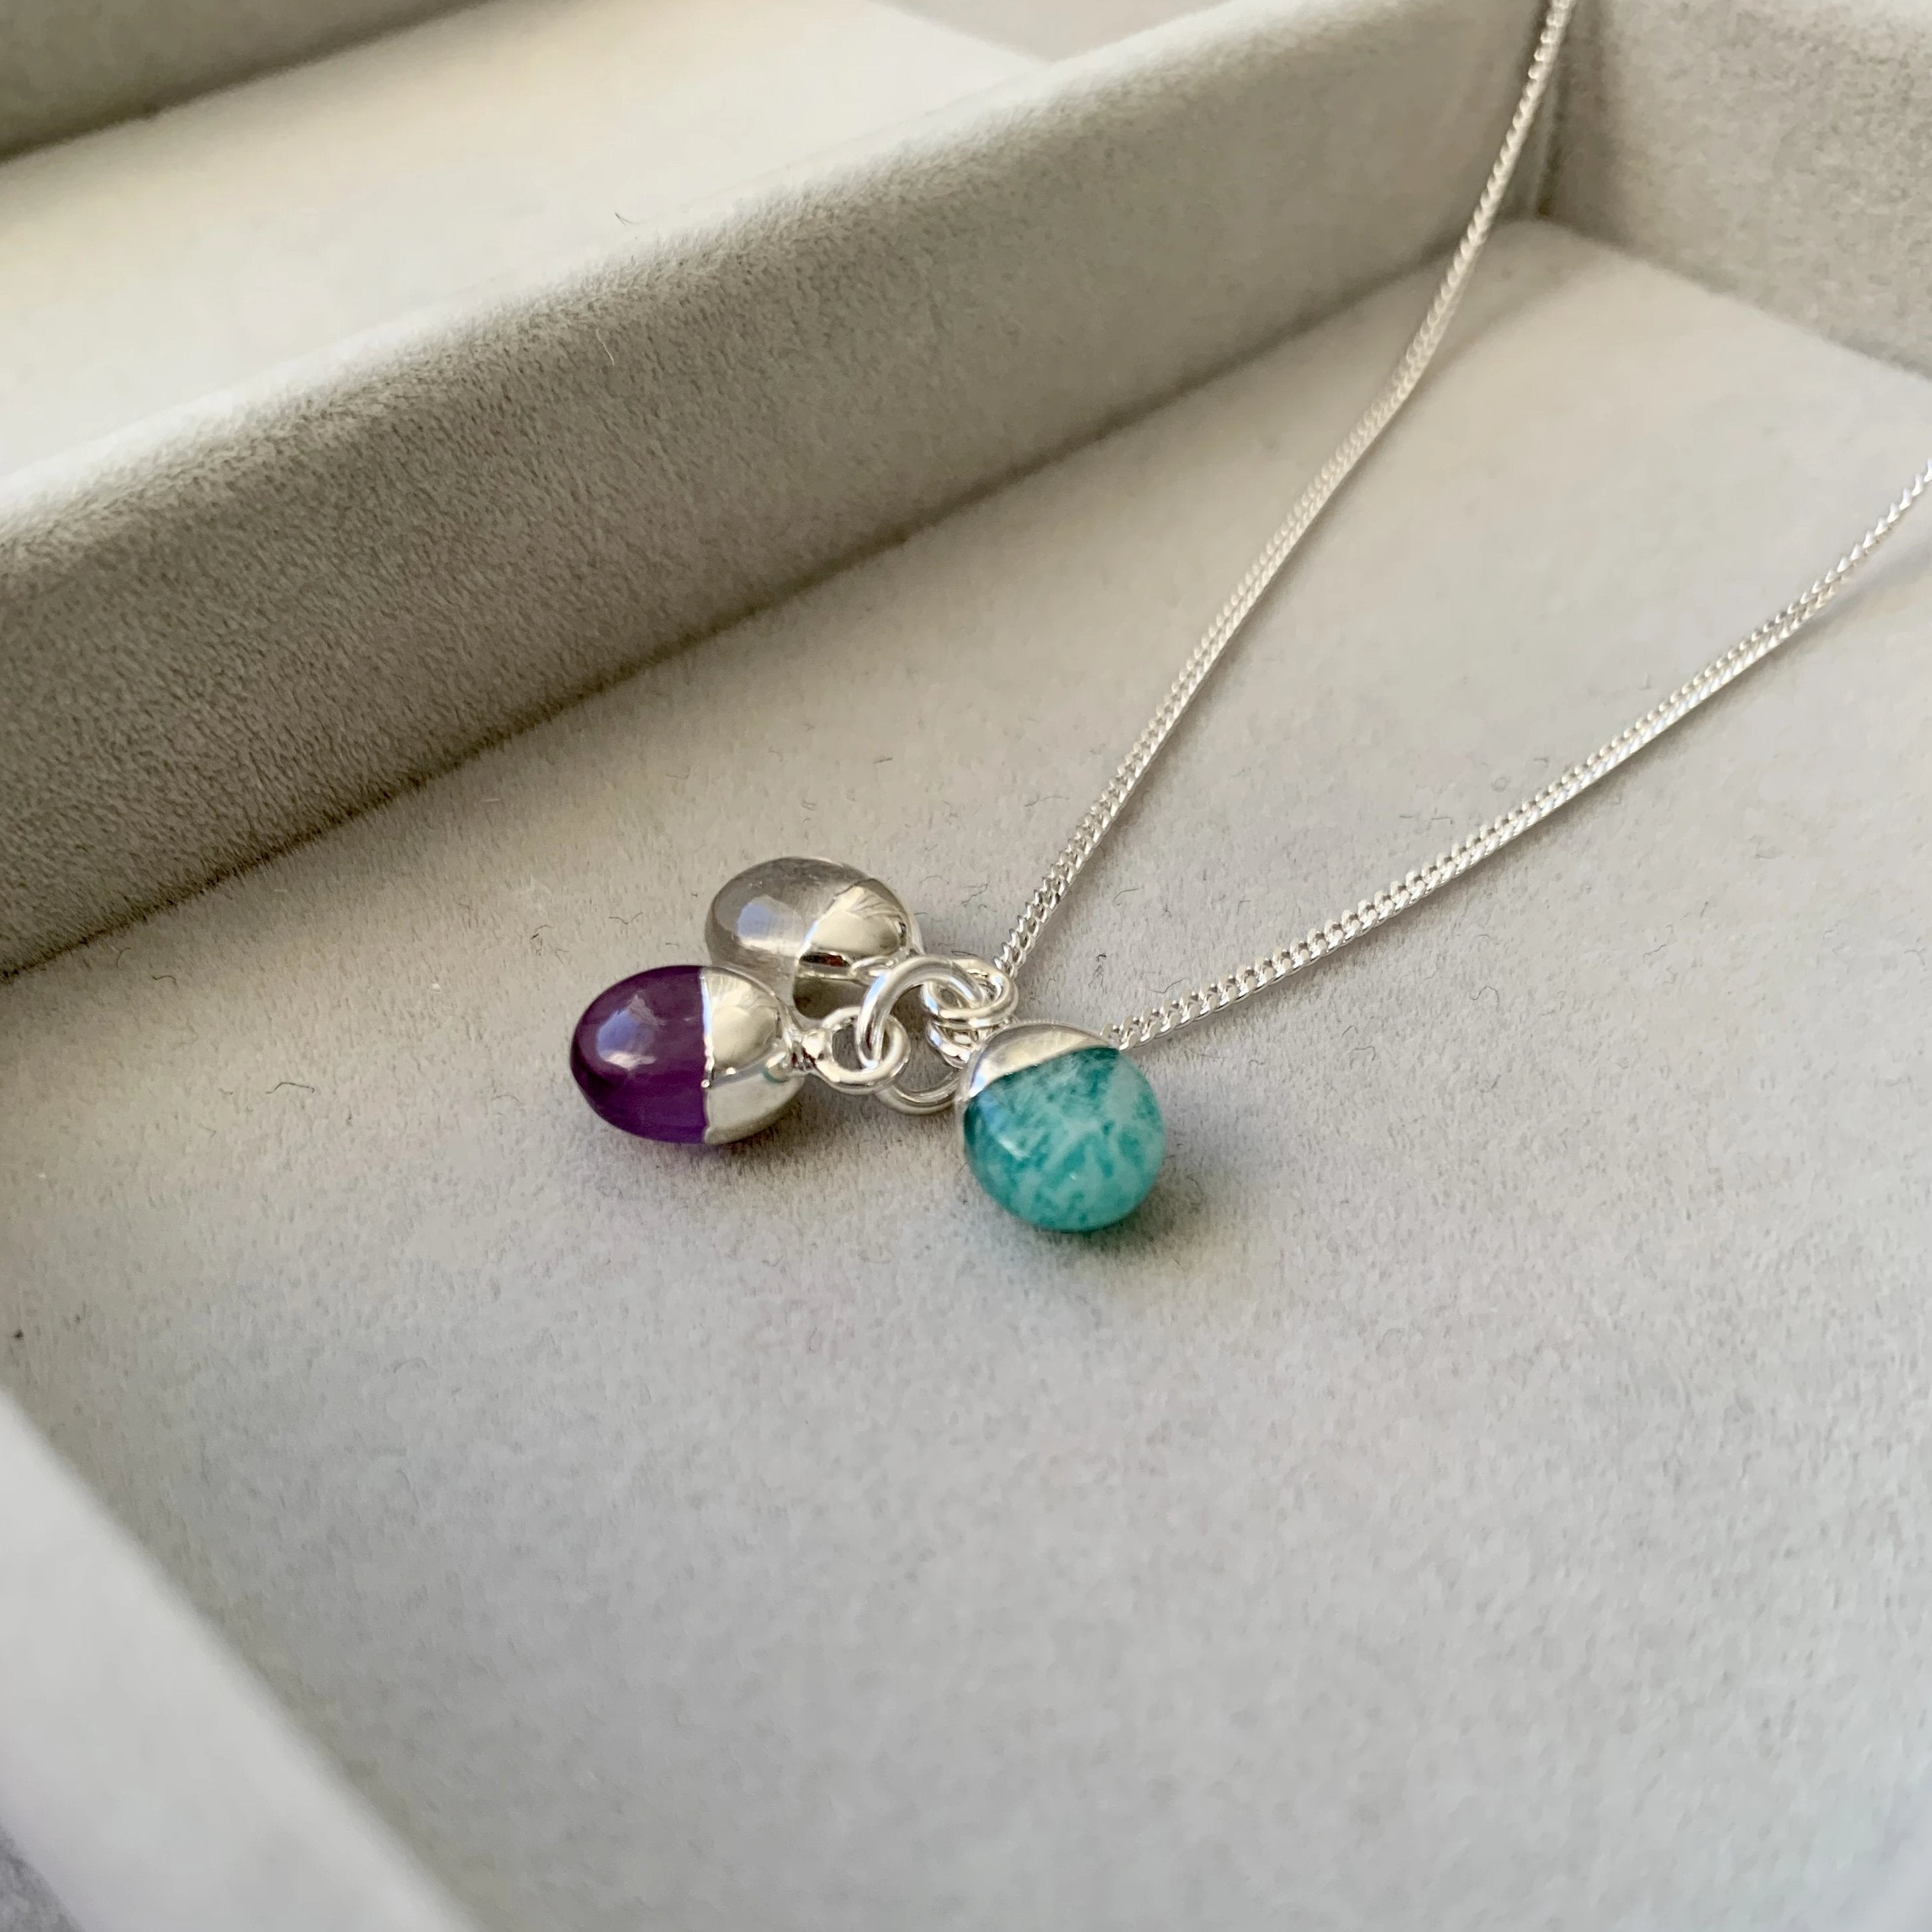 Tiny Tumbled Triple Necklace - Sterling Silver - Create Your Own - Decadorn